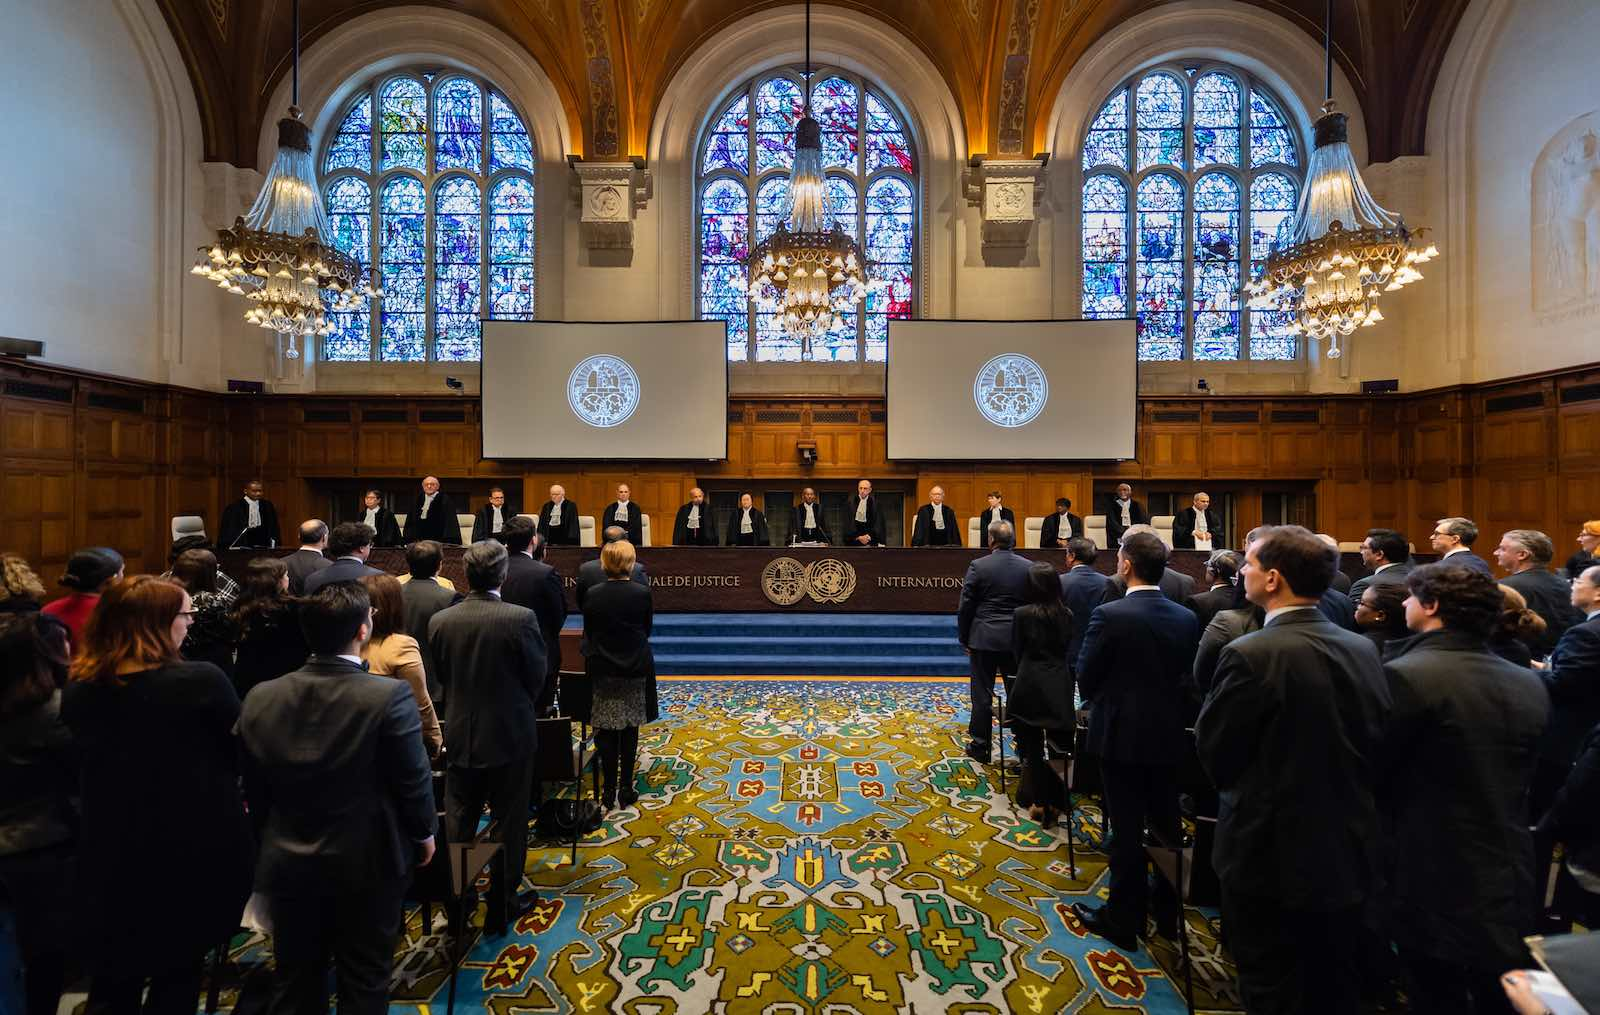 The International Court of Justice delivers its Advisory Opinion on the 1965 Separation of Chagos Archipelago from Mauritius, The Hague, 25 February 2019 (Wendy van Bree/UN Photo)